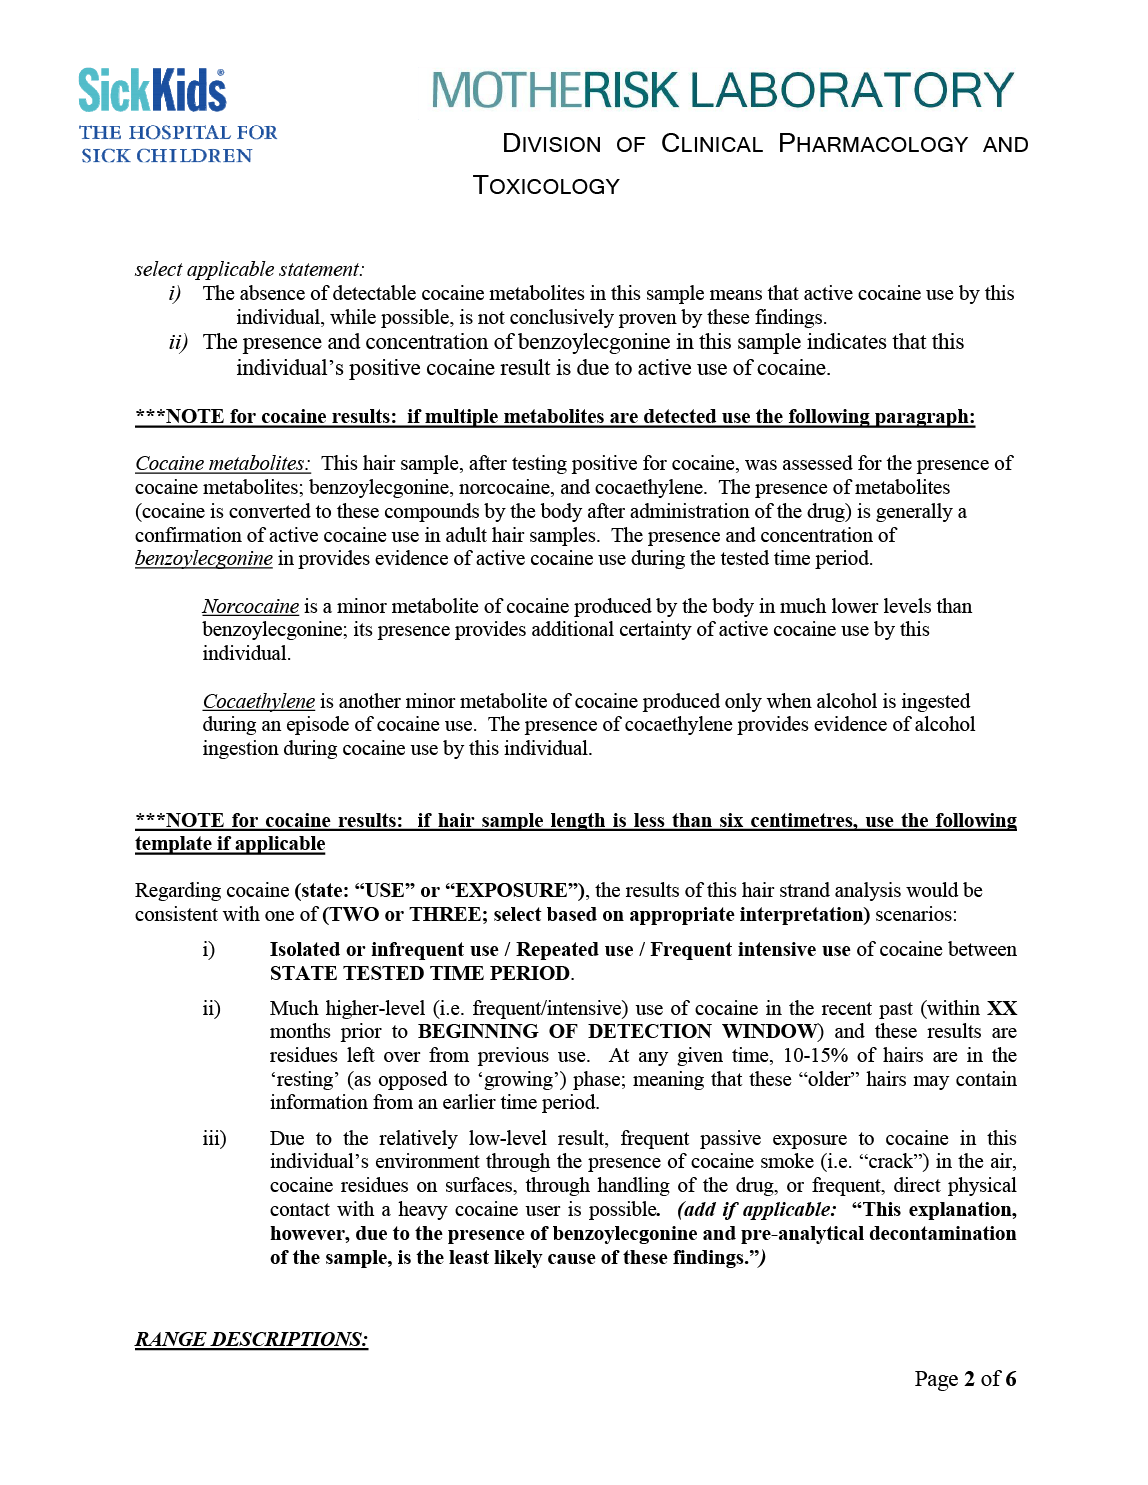 Report Of The Motherisk Hairysis Independent Review